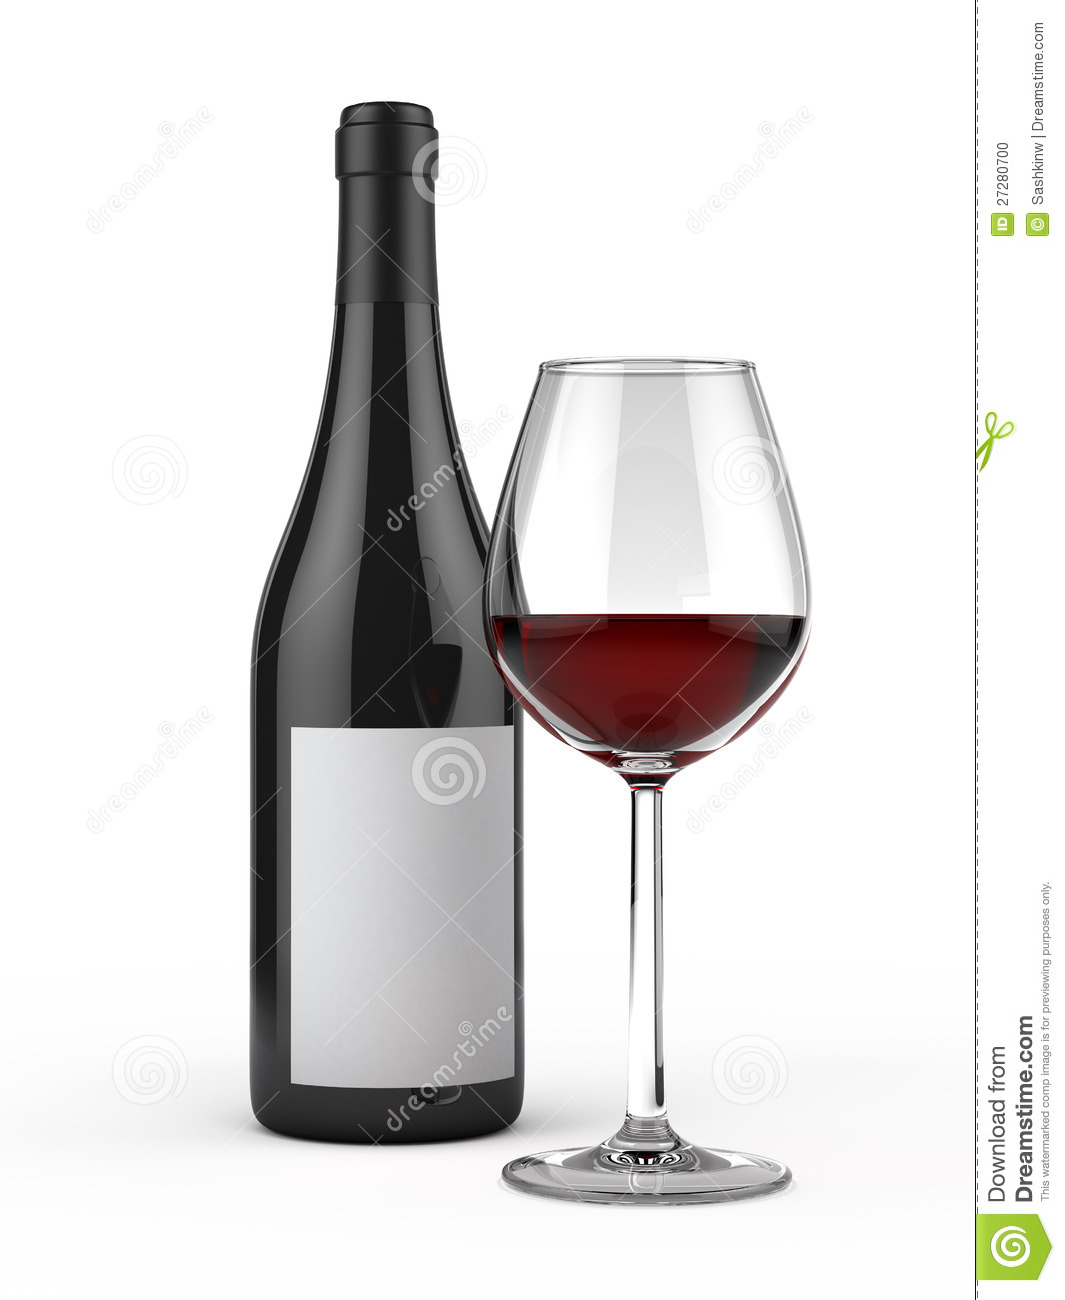 Glass and bottle of red wine stock photo image 27280700 for Wine bottle glass